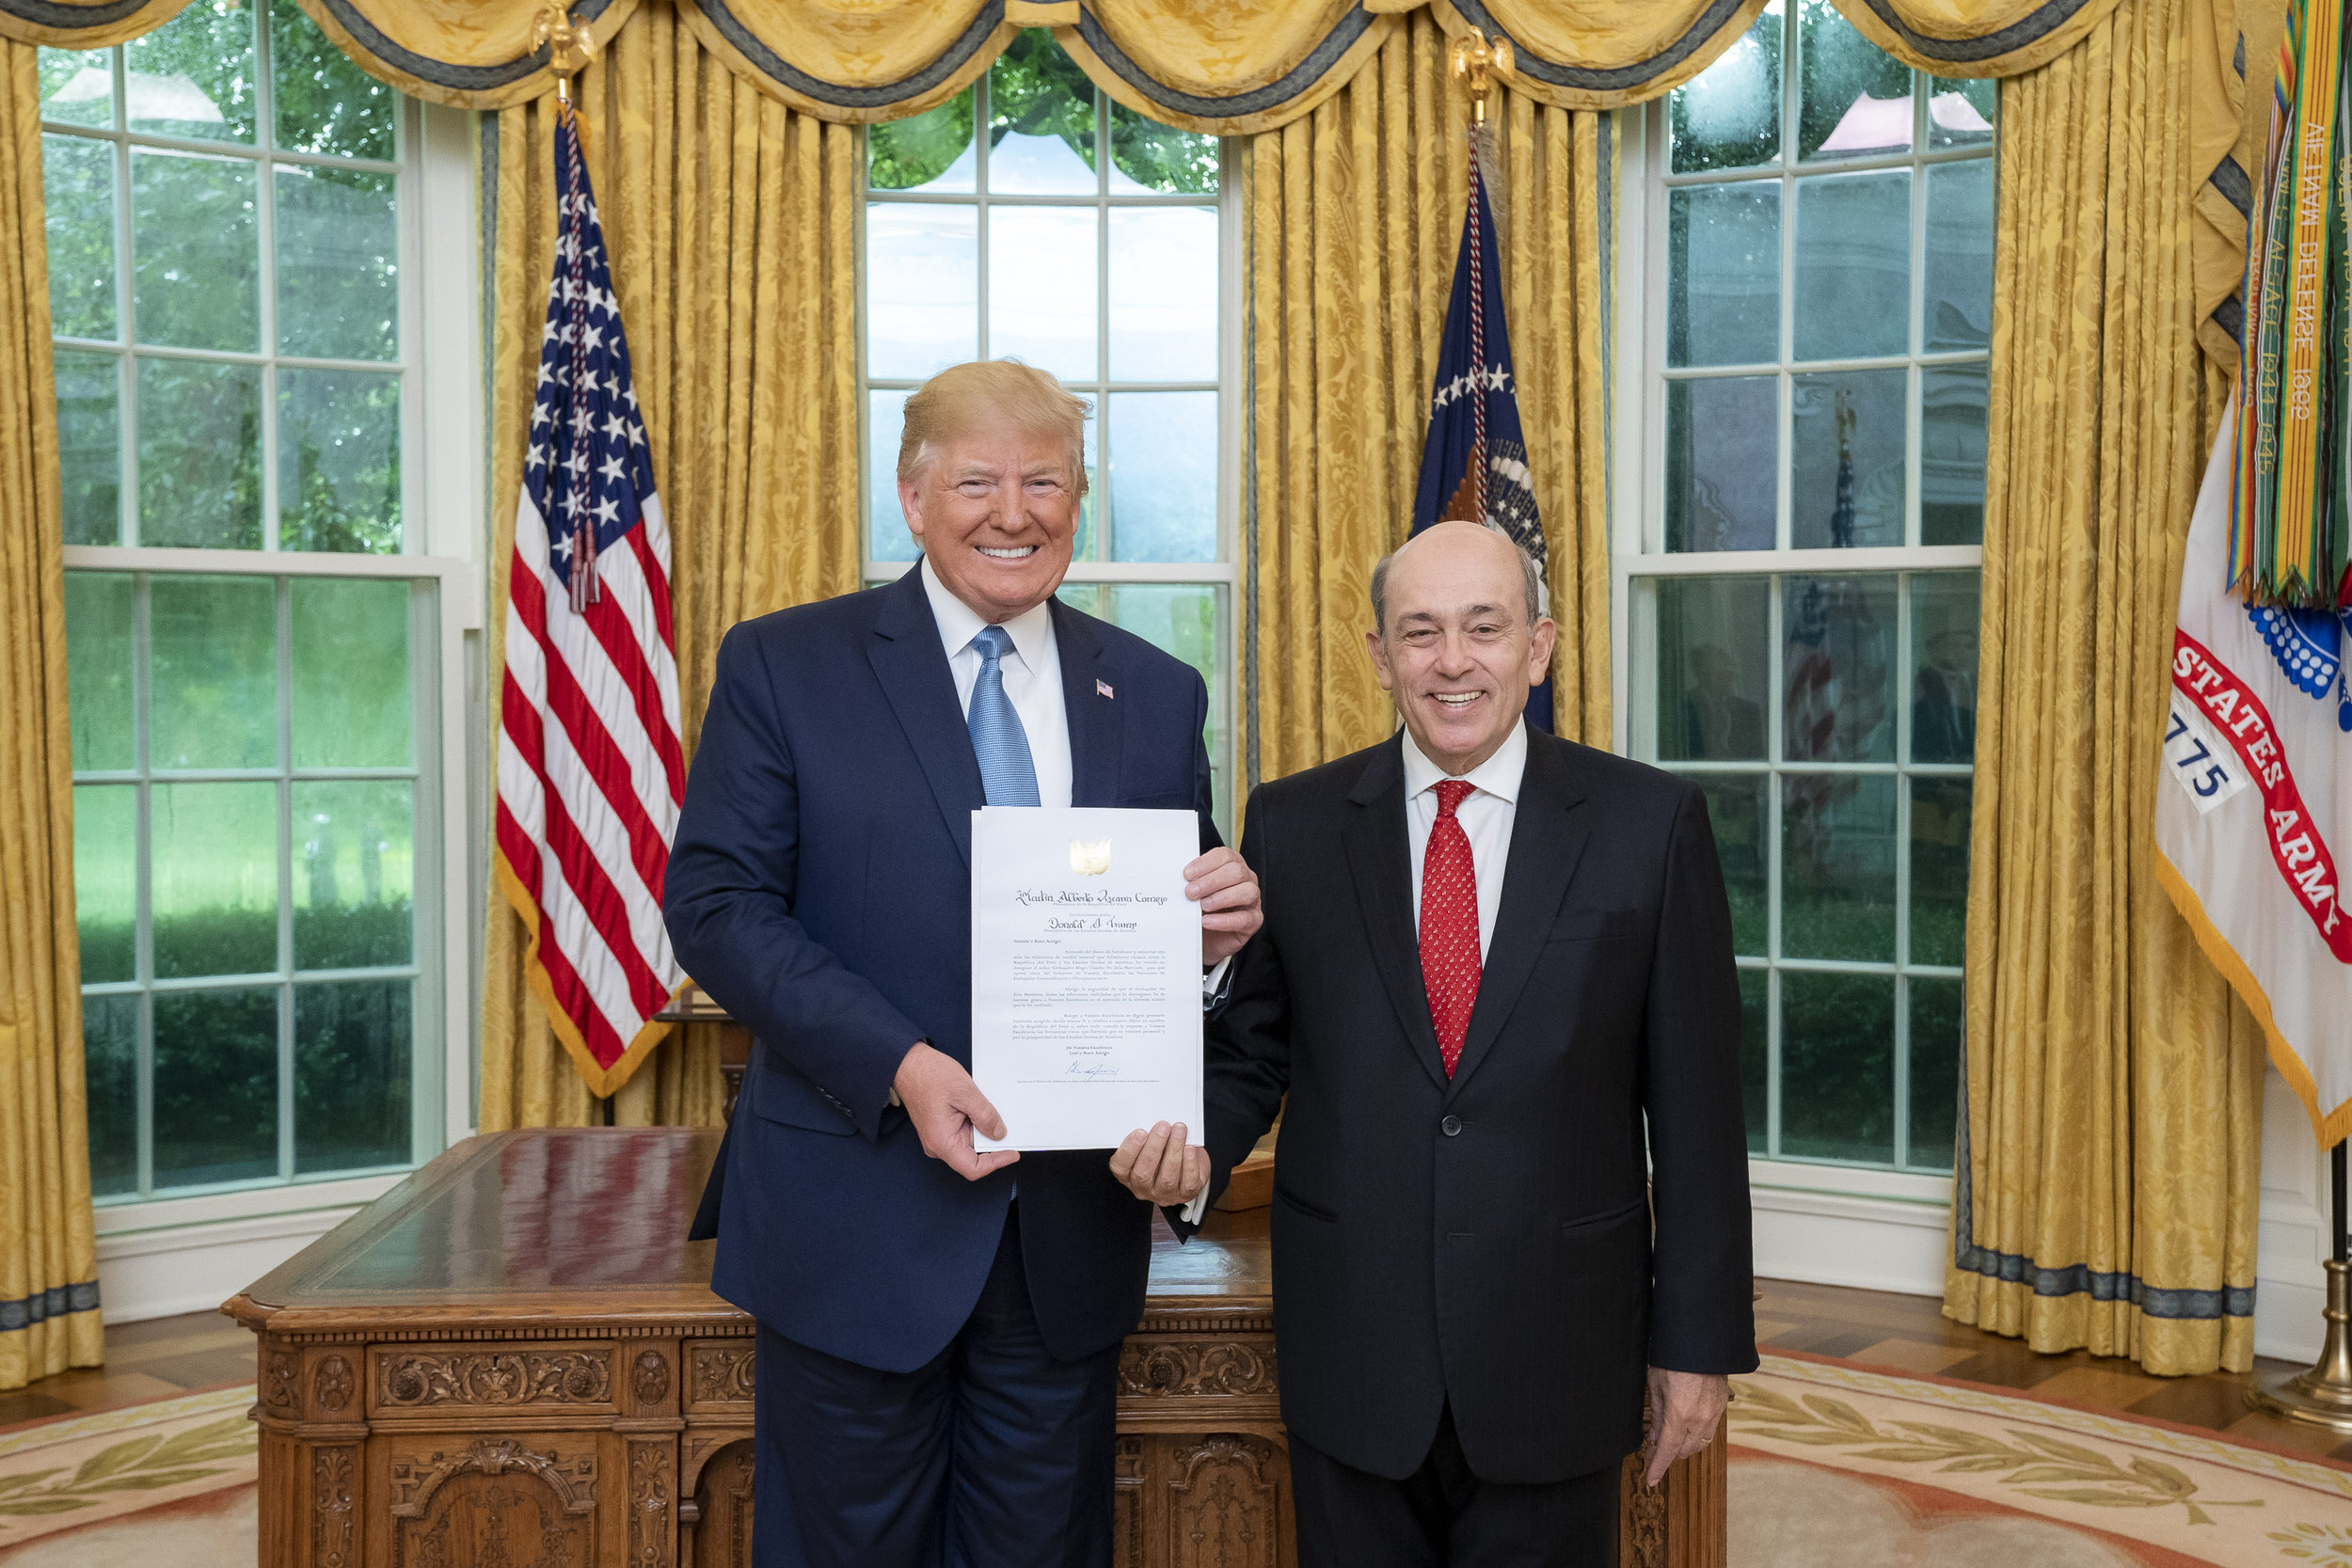 Peruvian Ambassador Hugo de Zela presented his credential letters to U.S. President Donald Trump on July 8th, 2019, thus accrediting his status as Ambassador Extraordinary and Plenipotentiary of the Republic of Peru to the United States.